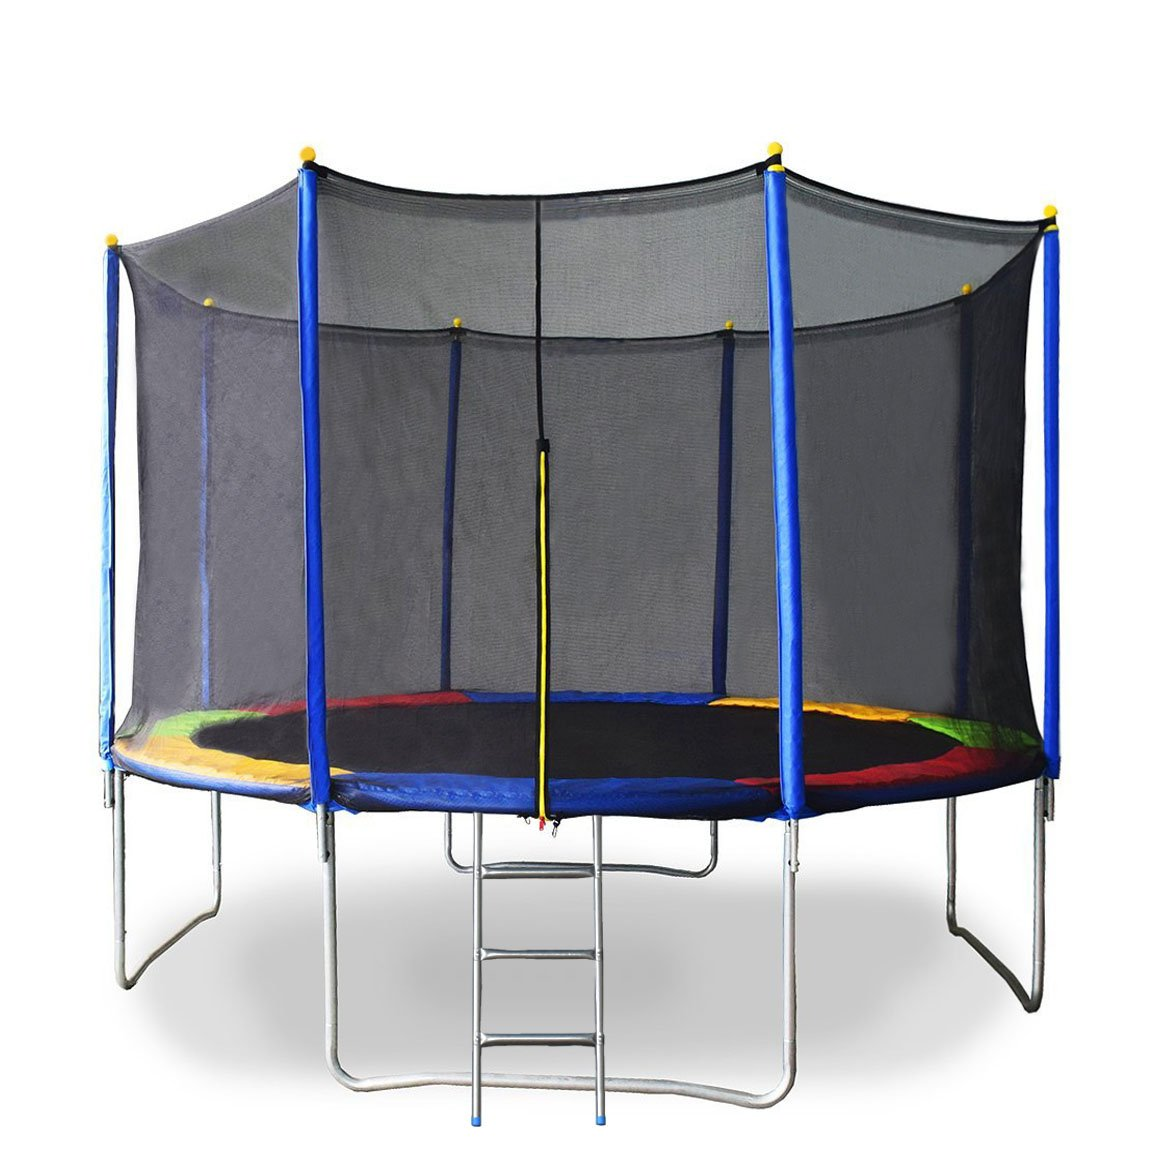 Airzone 14 Spring Trampoline And Enclosure Set: Trampolines : Online Shopping For Clothing, Shoes, Jewelry